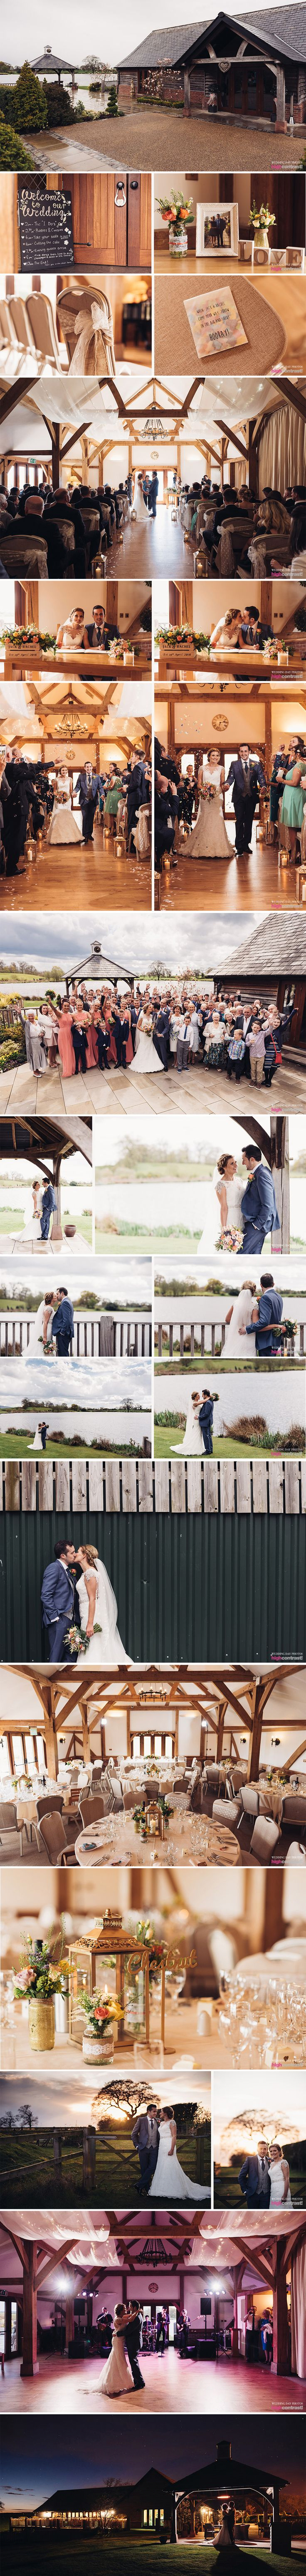 Heres The Highlights From Rachel Jacks Wedding Photography That Took Place At Stunning Sandhole Oak Barn A Rustic Venue In Cheshire